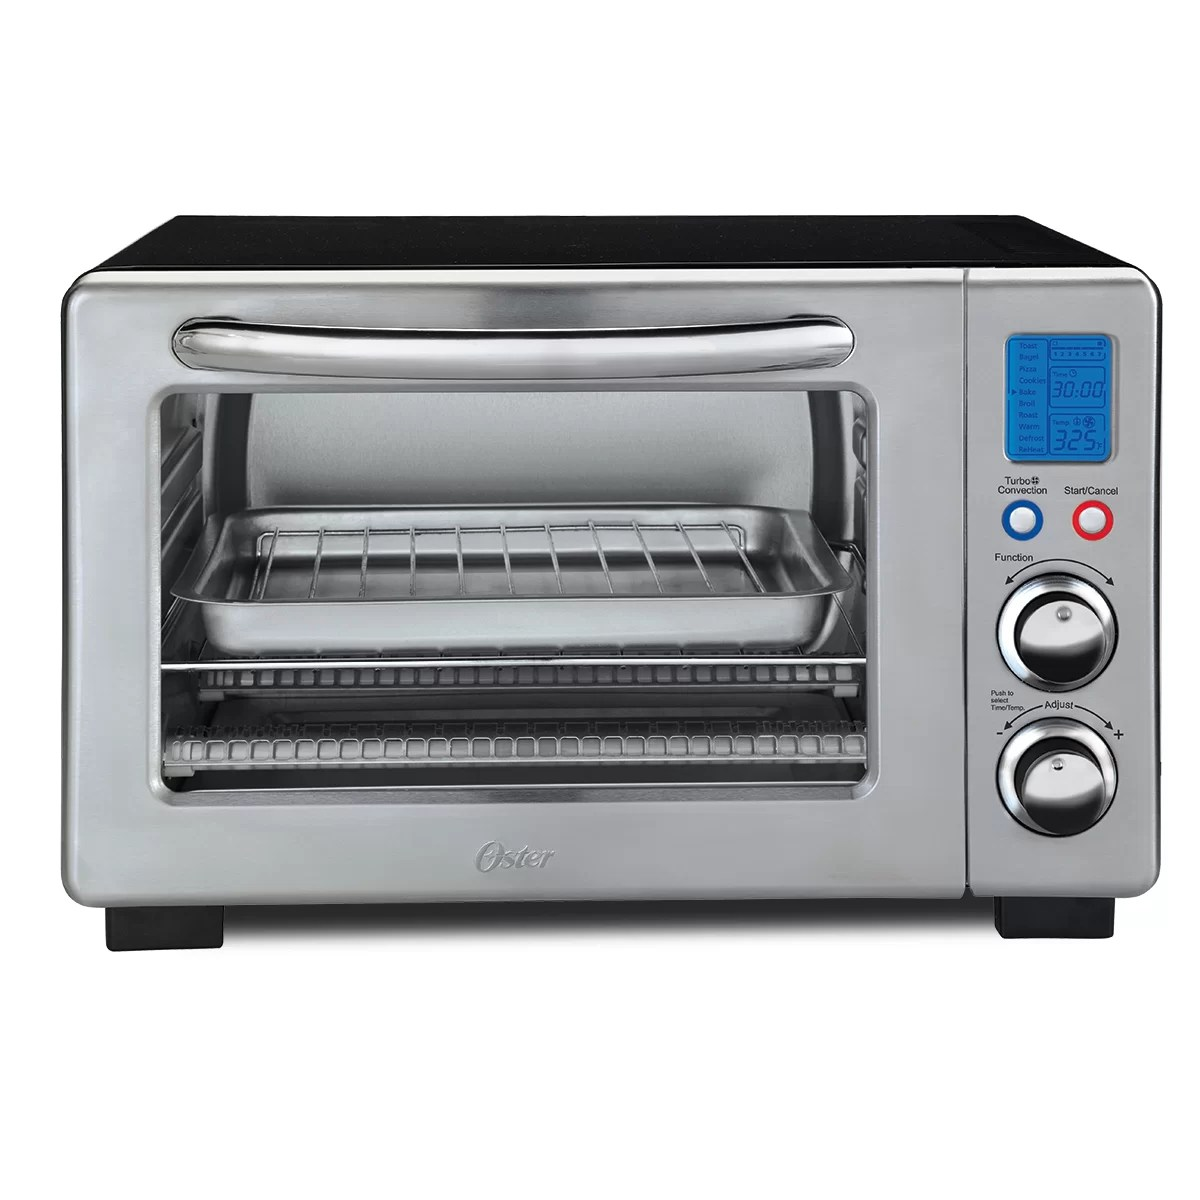 Oster Convection Countertop Oven Reviews Countertop Oven With Convection